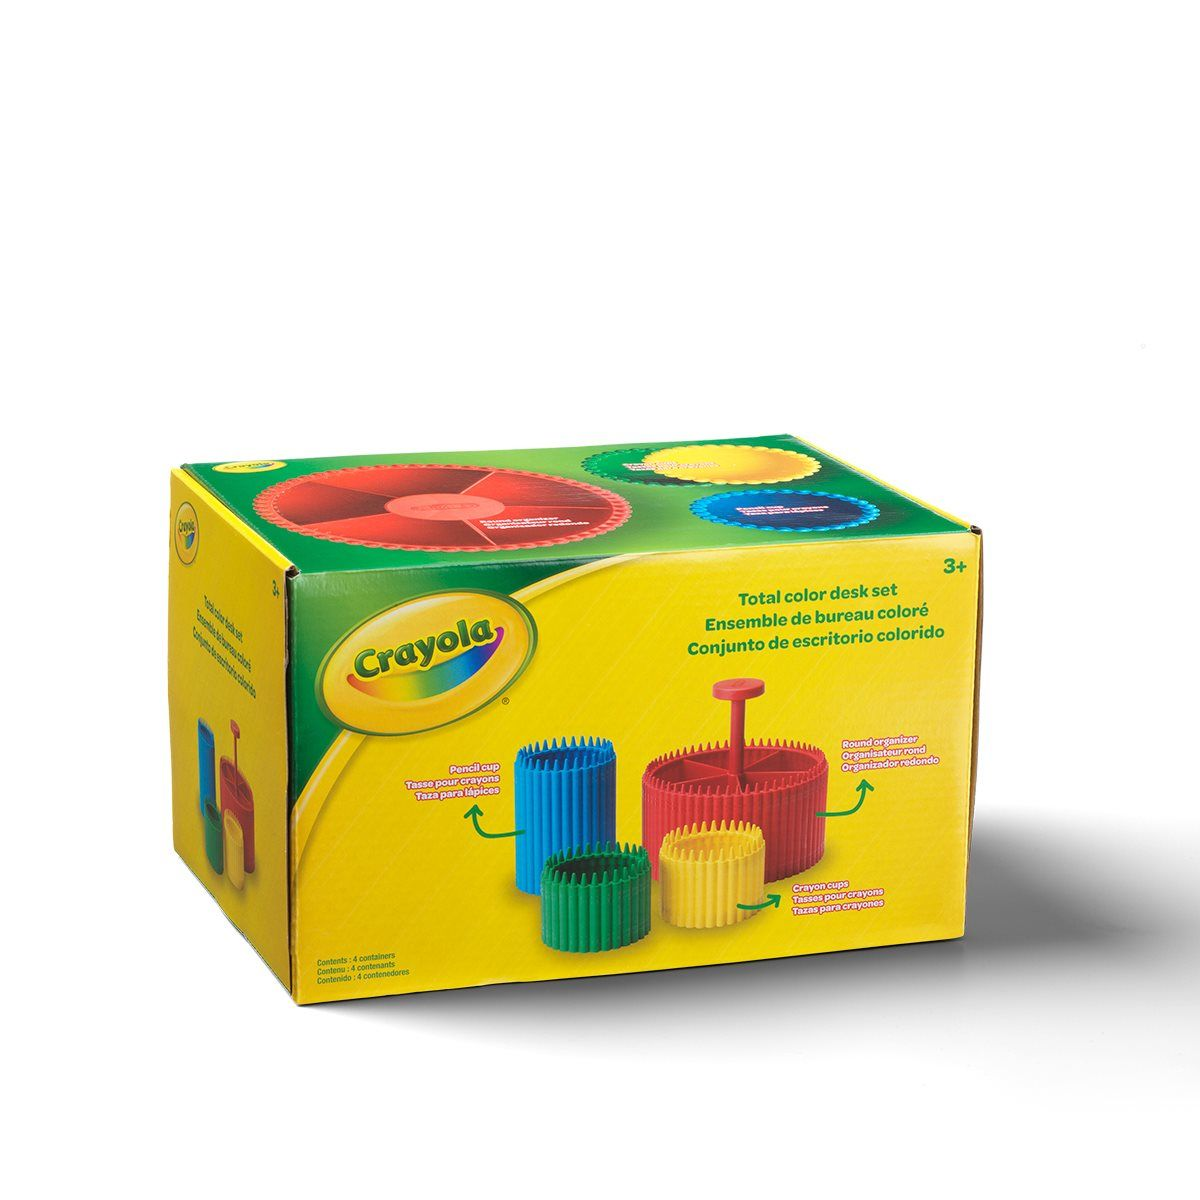 Buy Crayola Total Desk Organizing Set At Entertainment Earth Mint Condition Guaranteed Free Shipping On Eli In 2020 Desk Organizer Set Desk Organization Entertaining